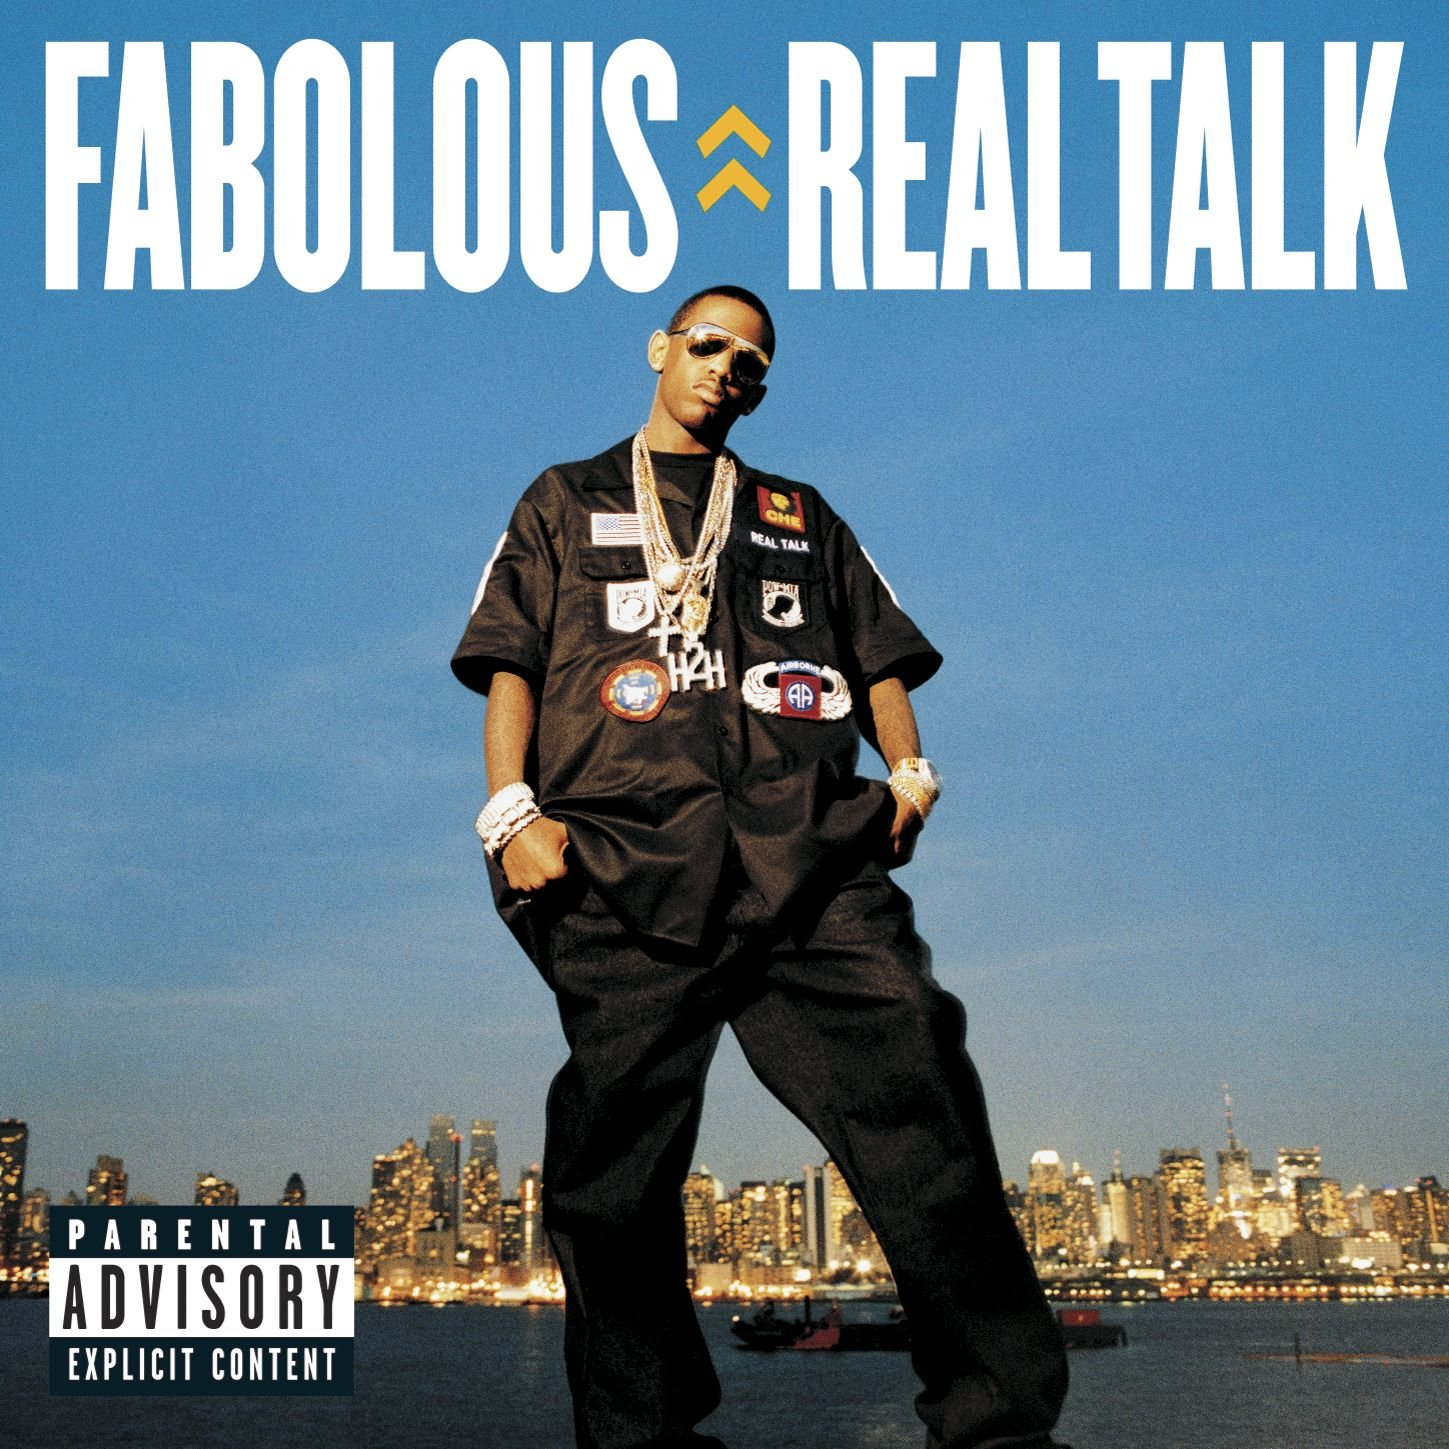 Real Talk [12 inch Analog]                                                                                                                                                                                                                                                    <span class=